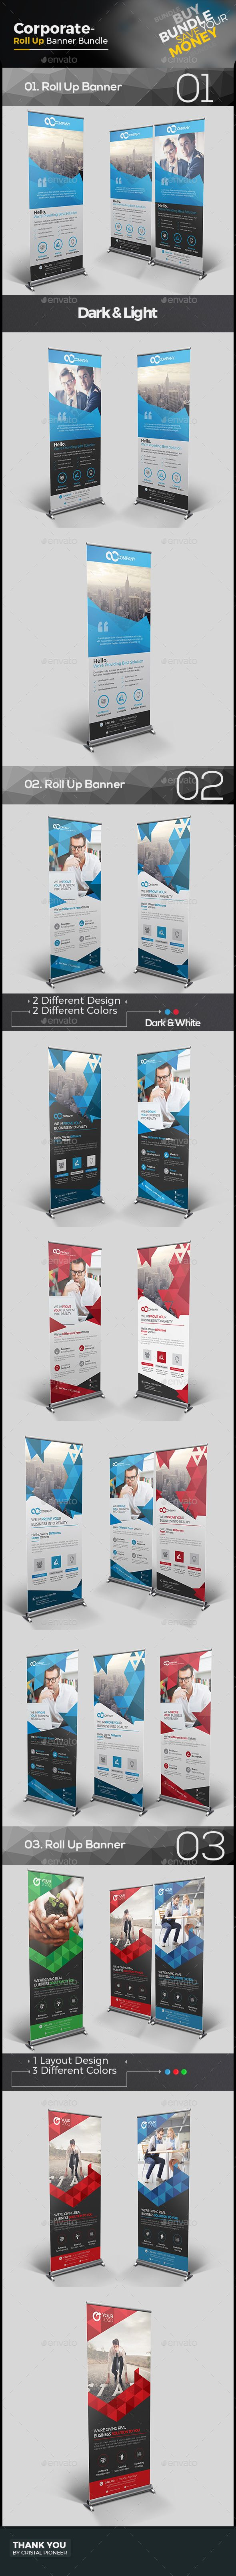 3 Corporate Roll Up Banner Templates Vector EPS, AI Illustrator. Download here:...